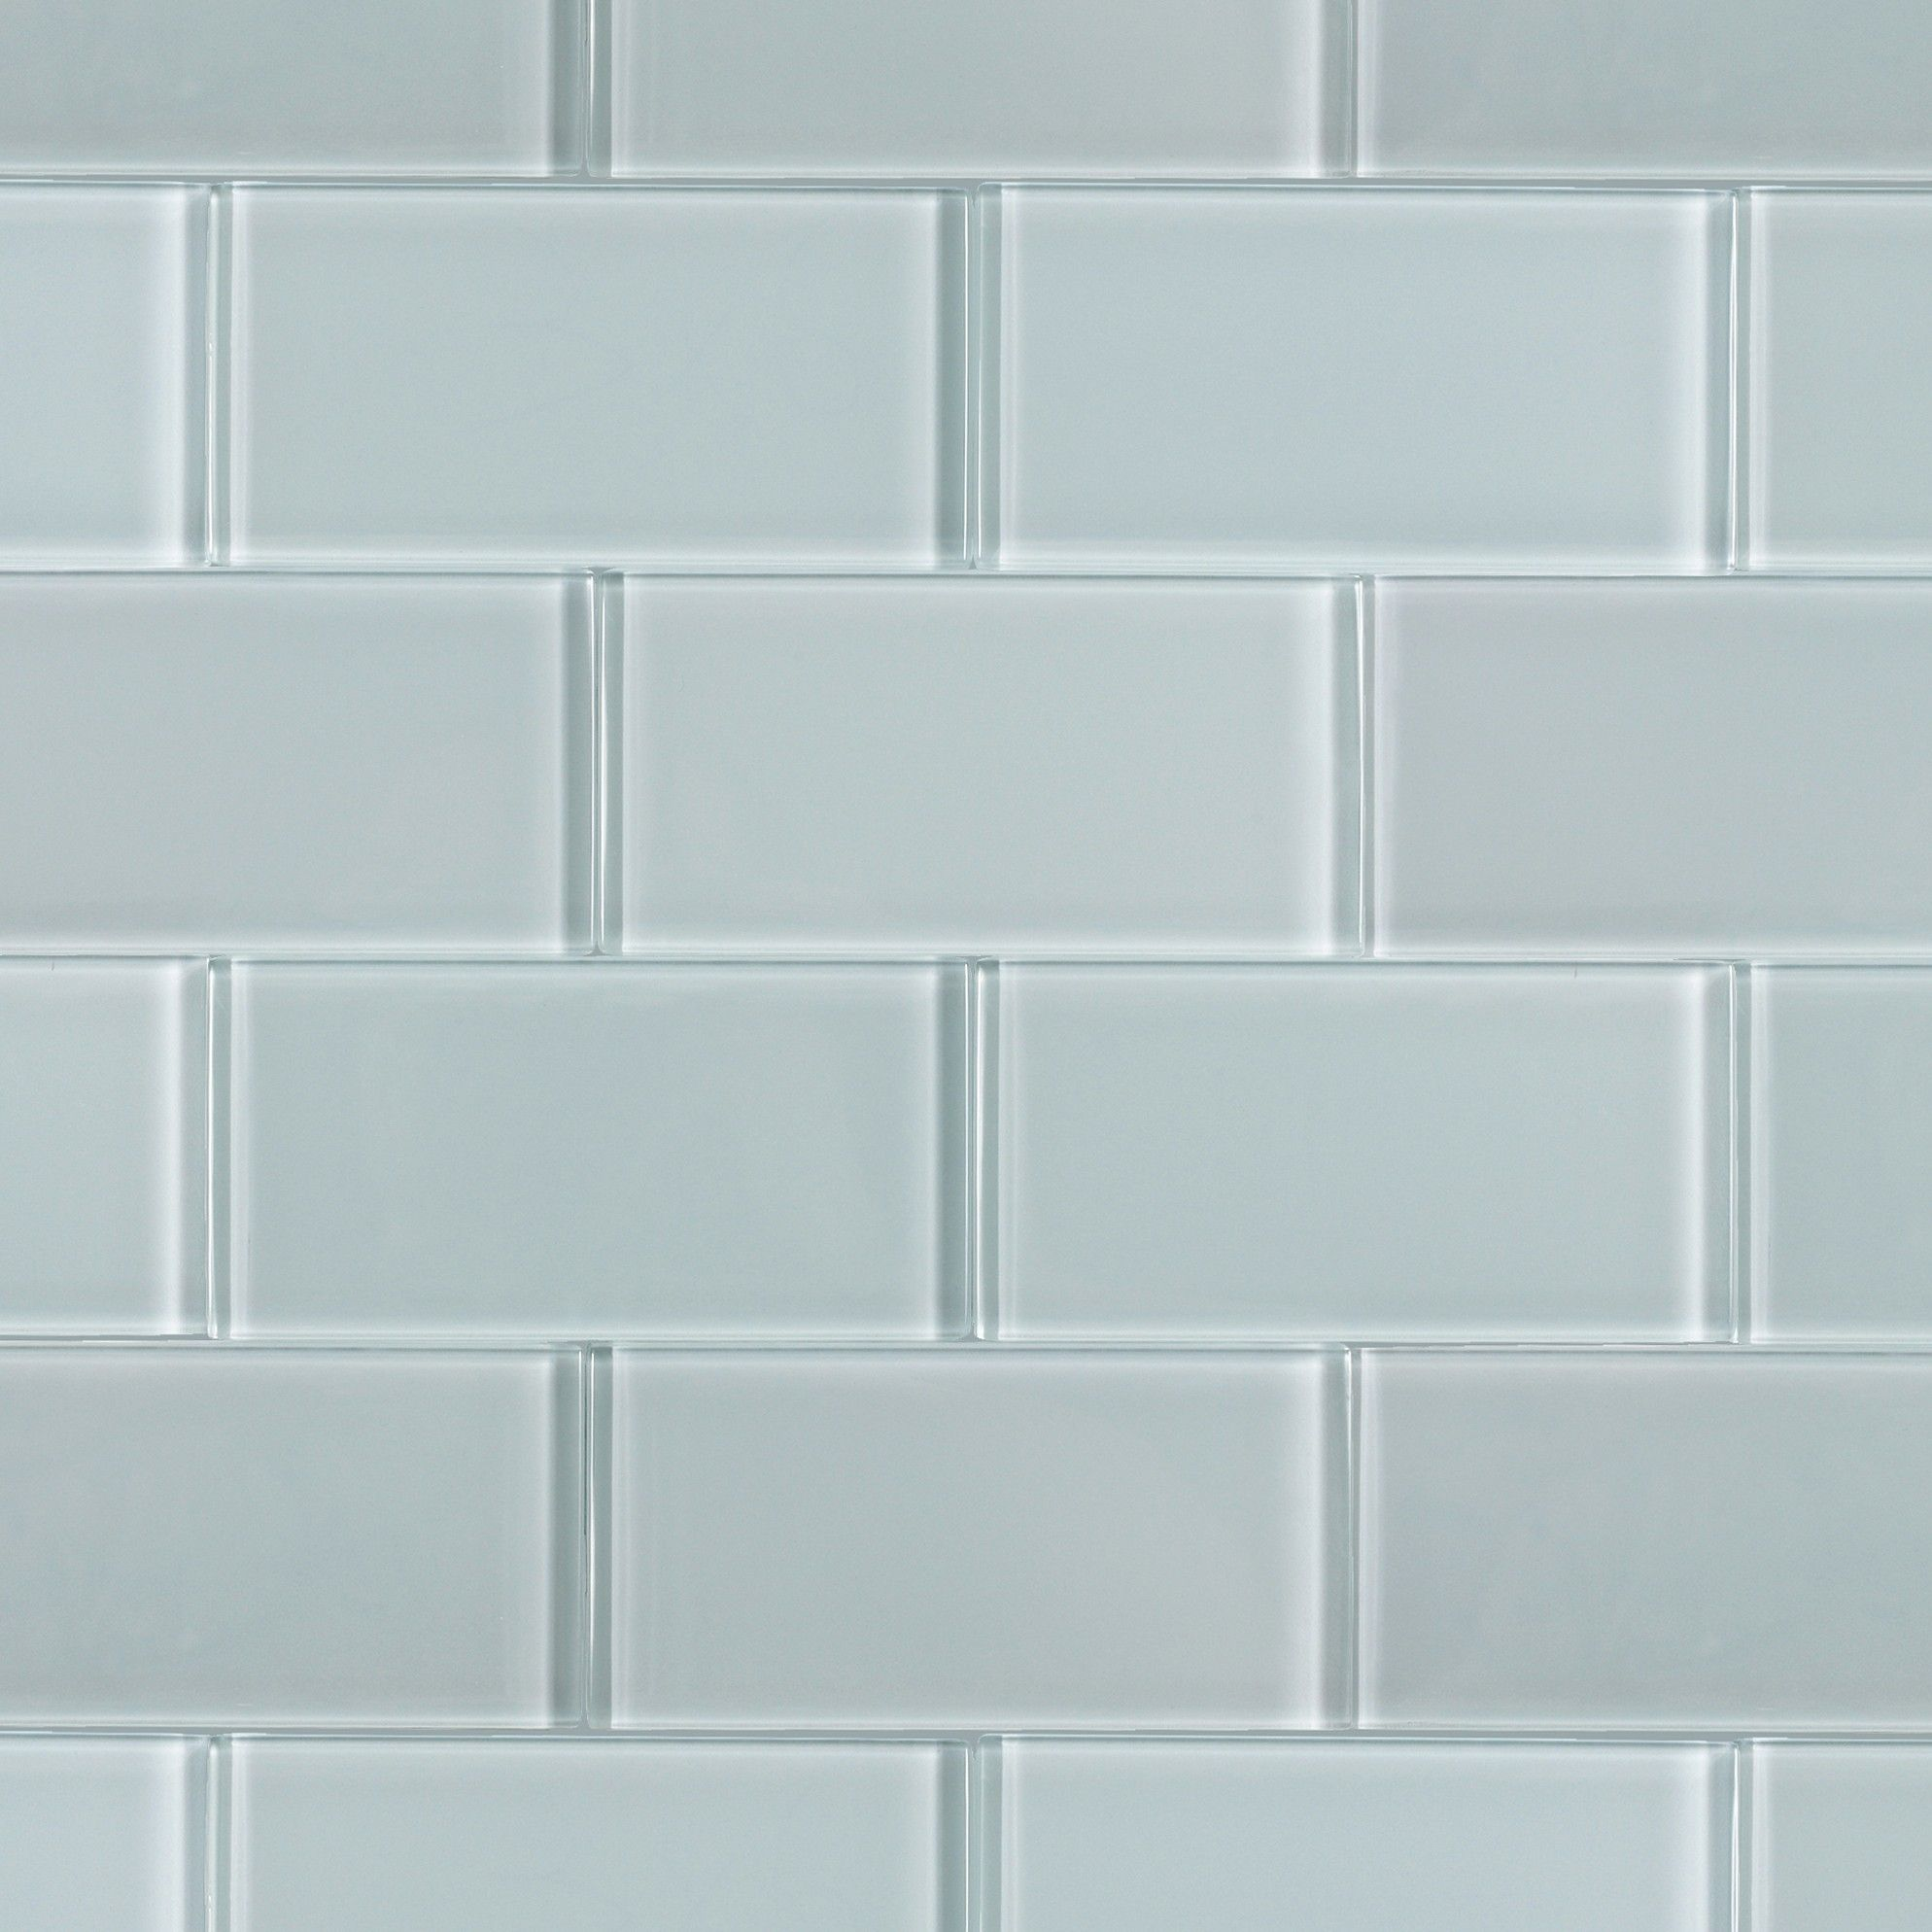 Loft natural white polished 3x6 glass tile more a gray blue loft natural white polished 3x6 glass tile more a gray blue bottle glass color than dailygadgetfo Image collections